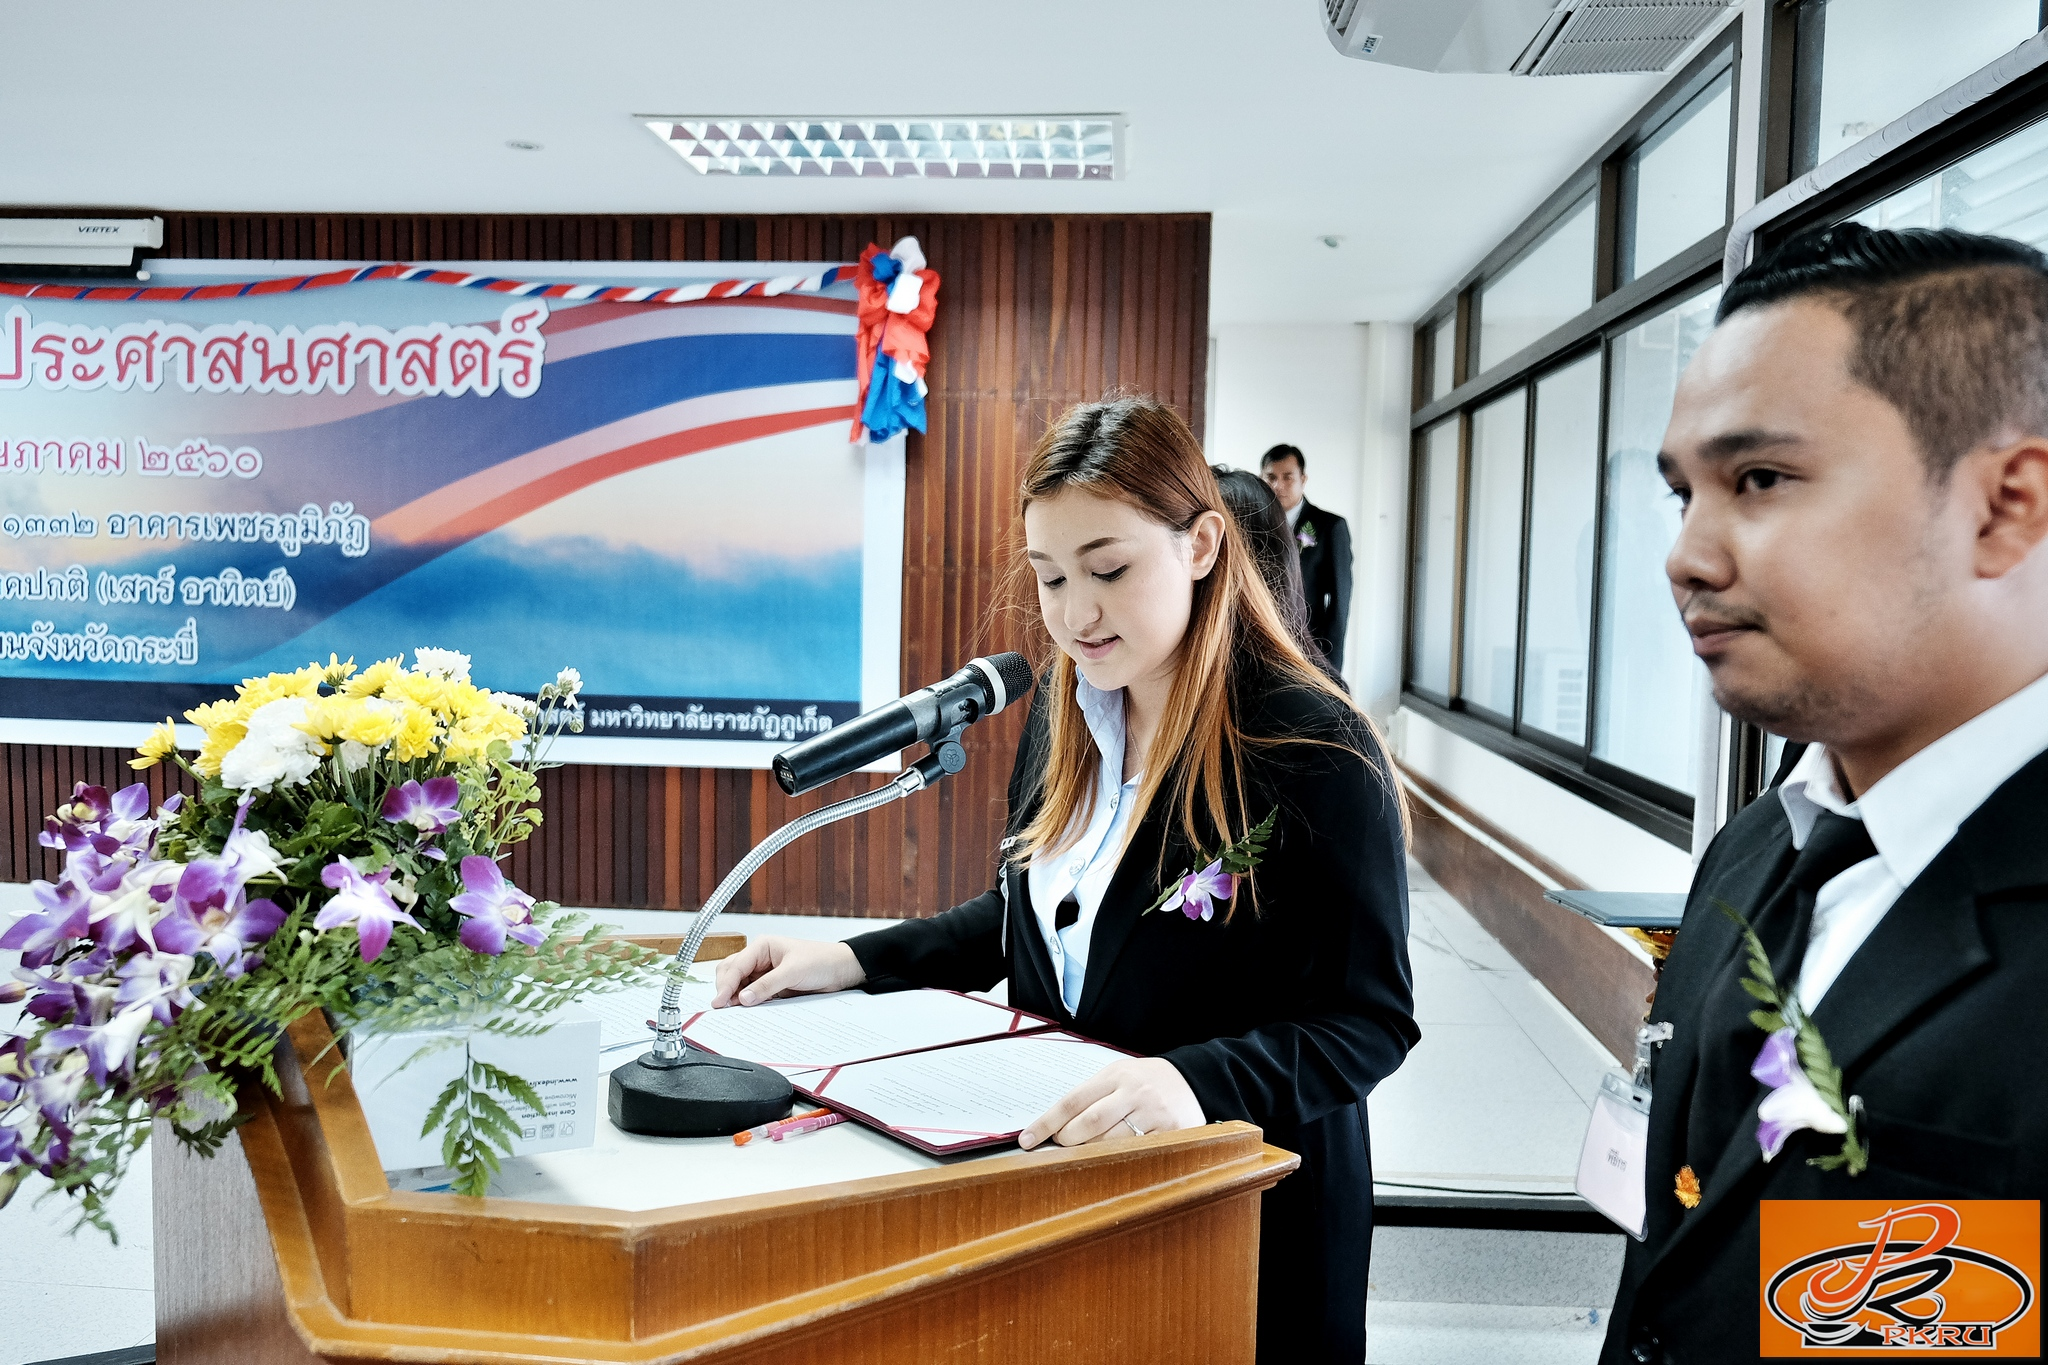 phuket public administration program may 2017 10